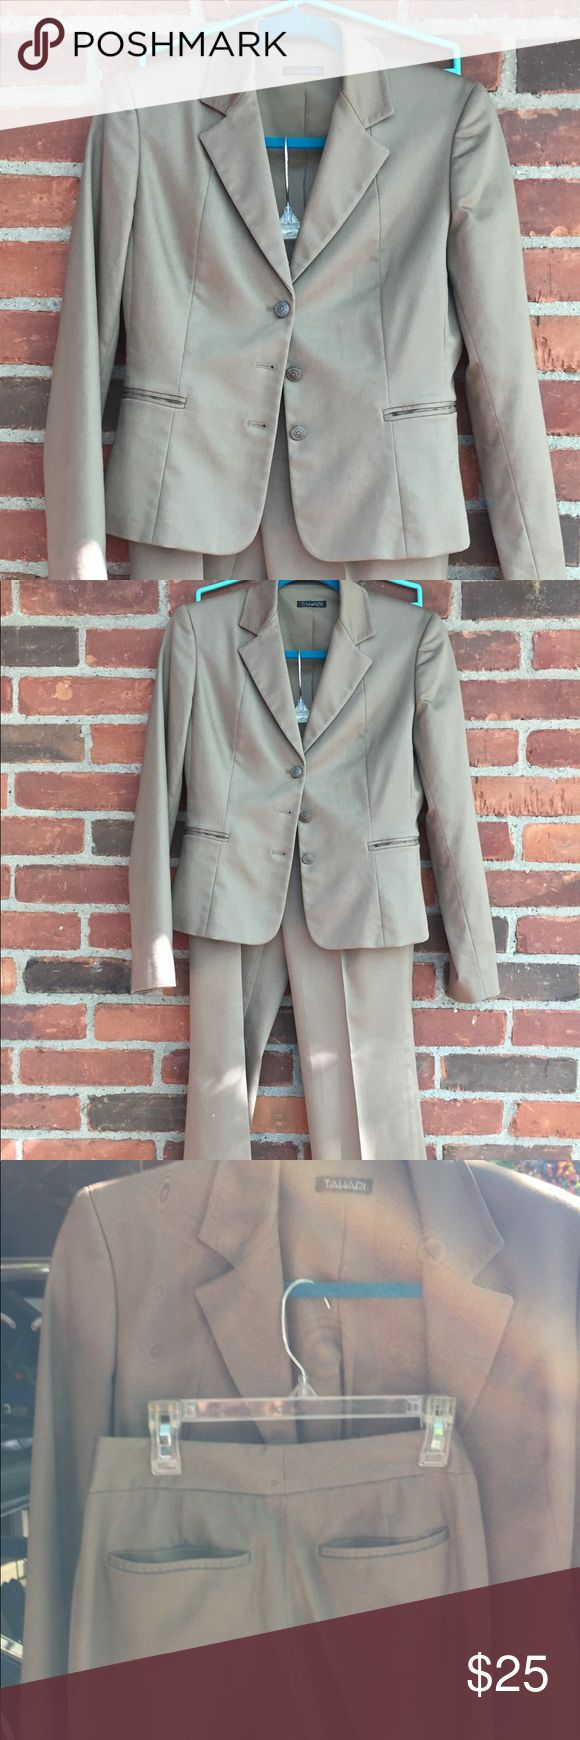 Womens  Capri Pant Suit Darker Khaki colored Capri Pant suit... it is an adorable Pant suit I just don't have anywhere to wear it! It needs s home. Seriously I have never worn it. Of course you can wear them separately or together! Taharai Jackets & Coats Blazers